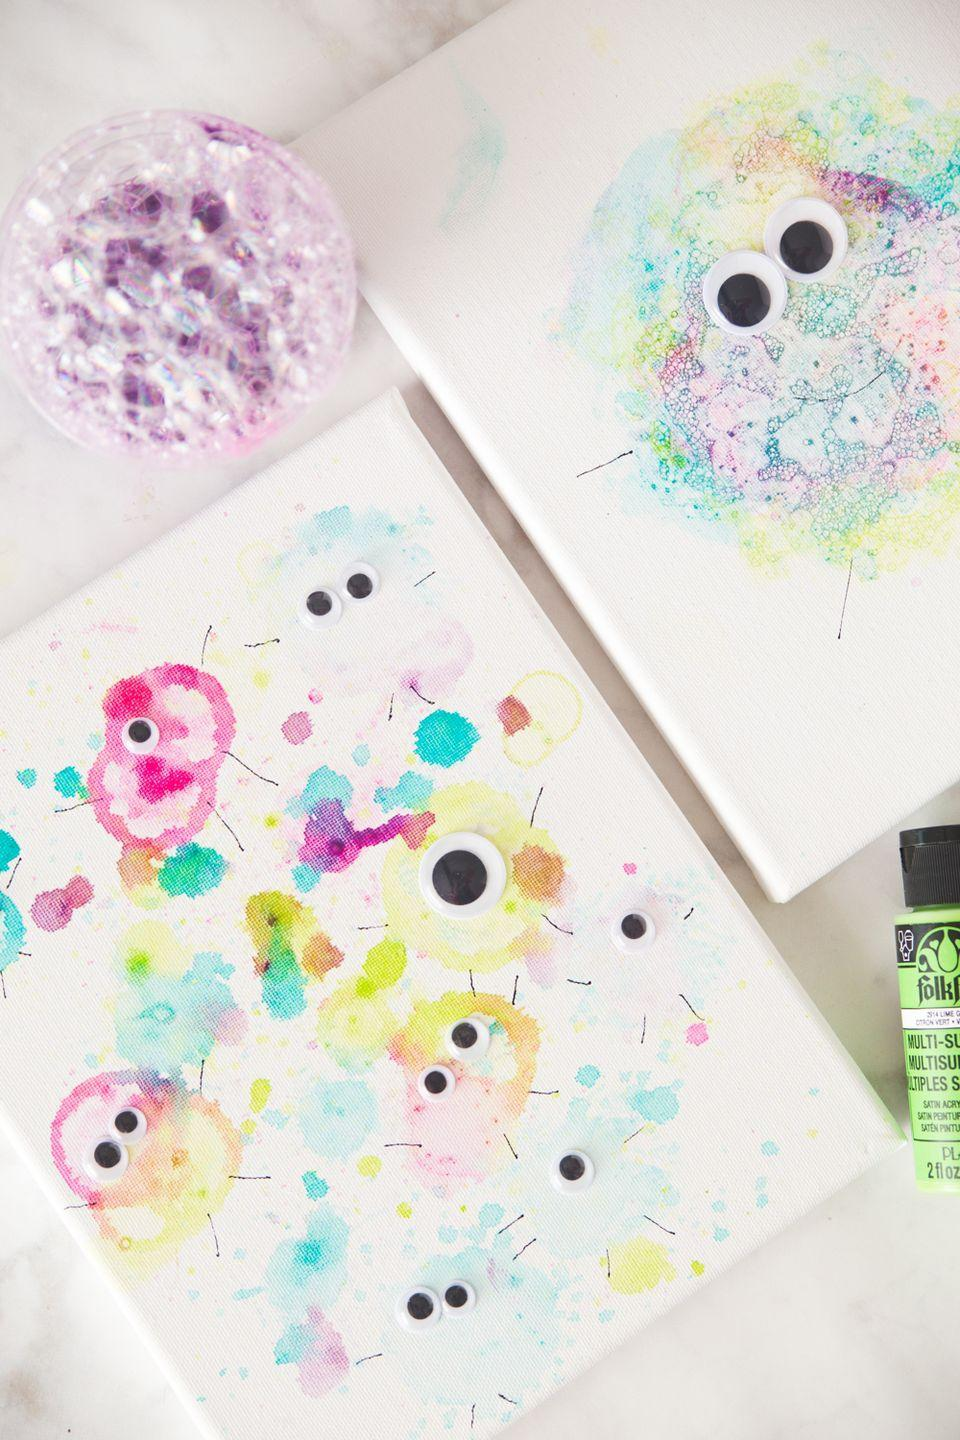 "<p>Not all monsters are scary. This fun craft, which uses a bubbly blend of paint and dish soap, is proof. </p><p><em><a href=""https://www.madetobeamomma.com/bubble-paint-monsters/"" rel=""nofollow noopener"" target=""_blank"" data-ylk=""slk:Get the tutorial at Made to be a Momma »"" class=""link rapid-noclick-resp"">Get the tutorial at Made to be a Momma »</a></em></p>"